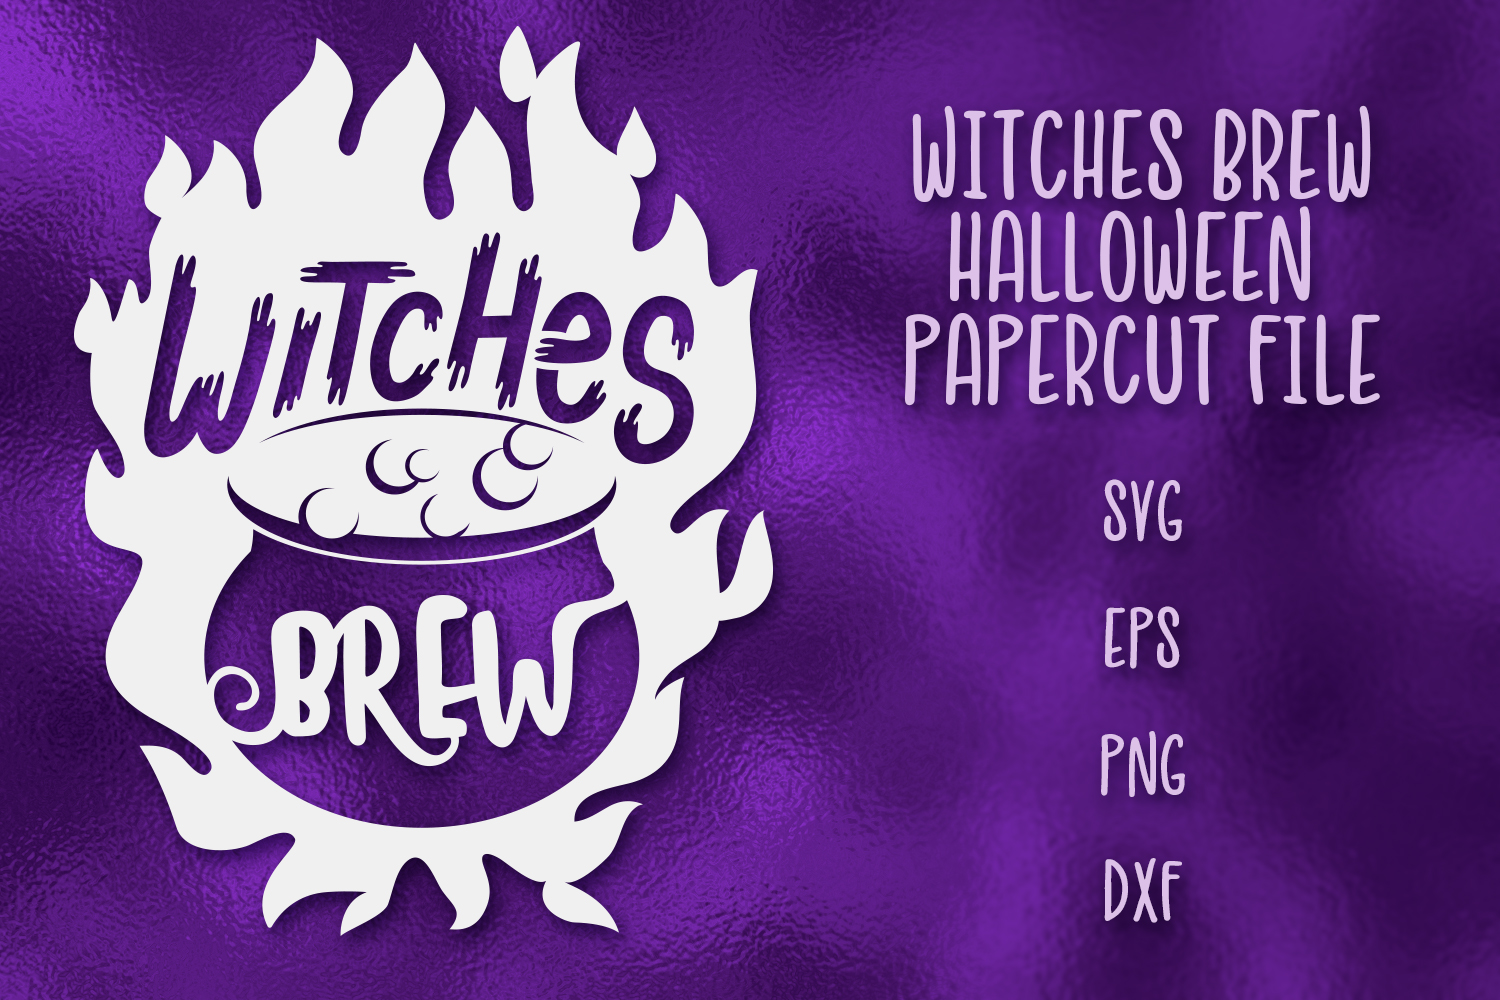 Witches Brew Halloween SVG Papercut File example image 1